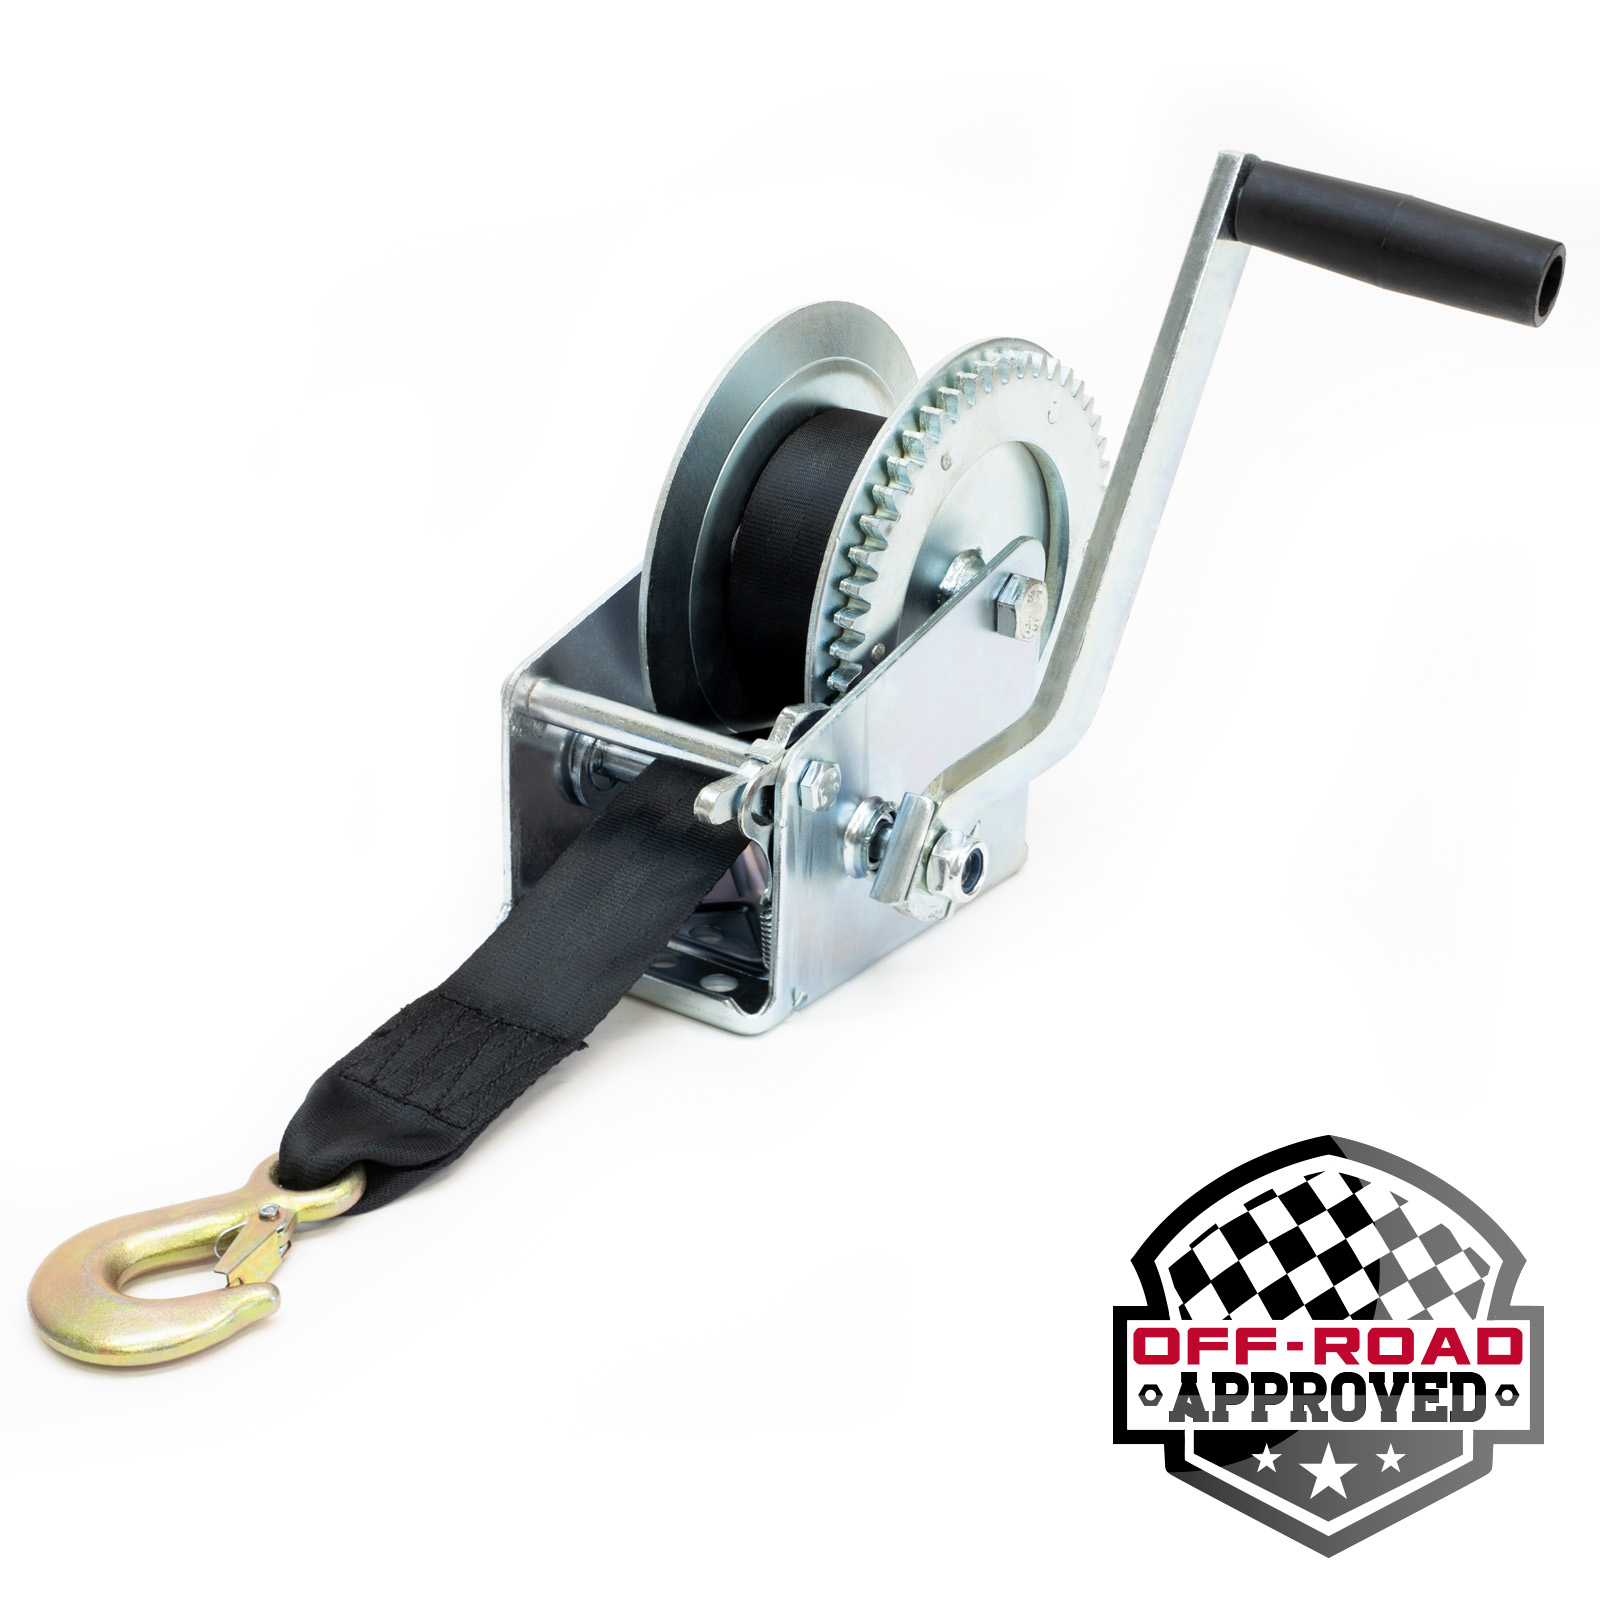 Details about Manual Trailer Winch with Hook and 20' Strap 1,500 lb Hand  Crank Boat Pull Tow